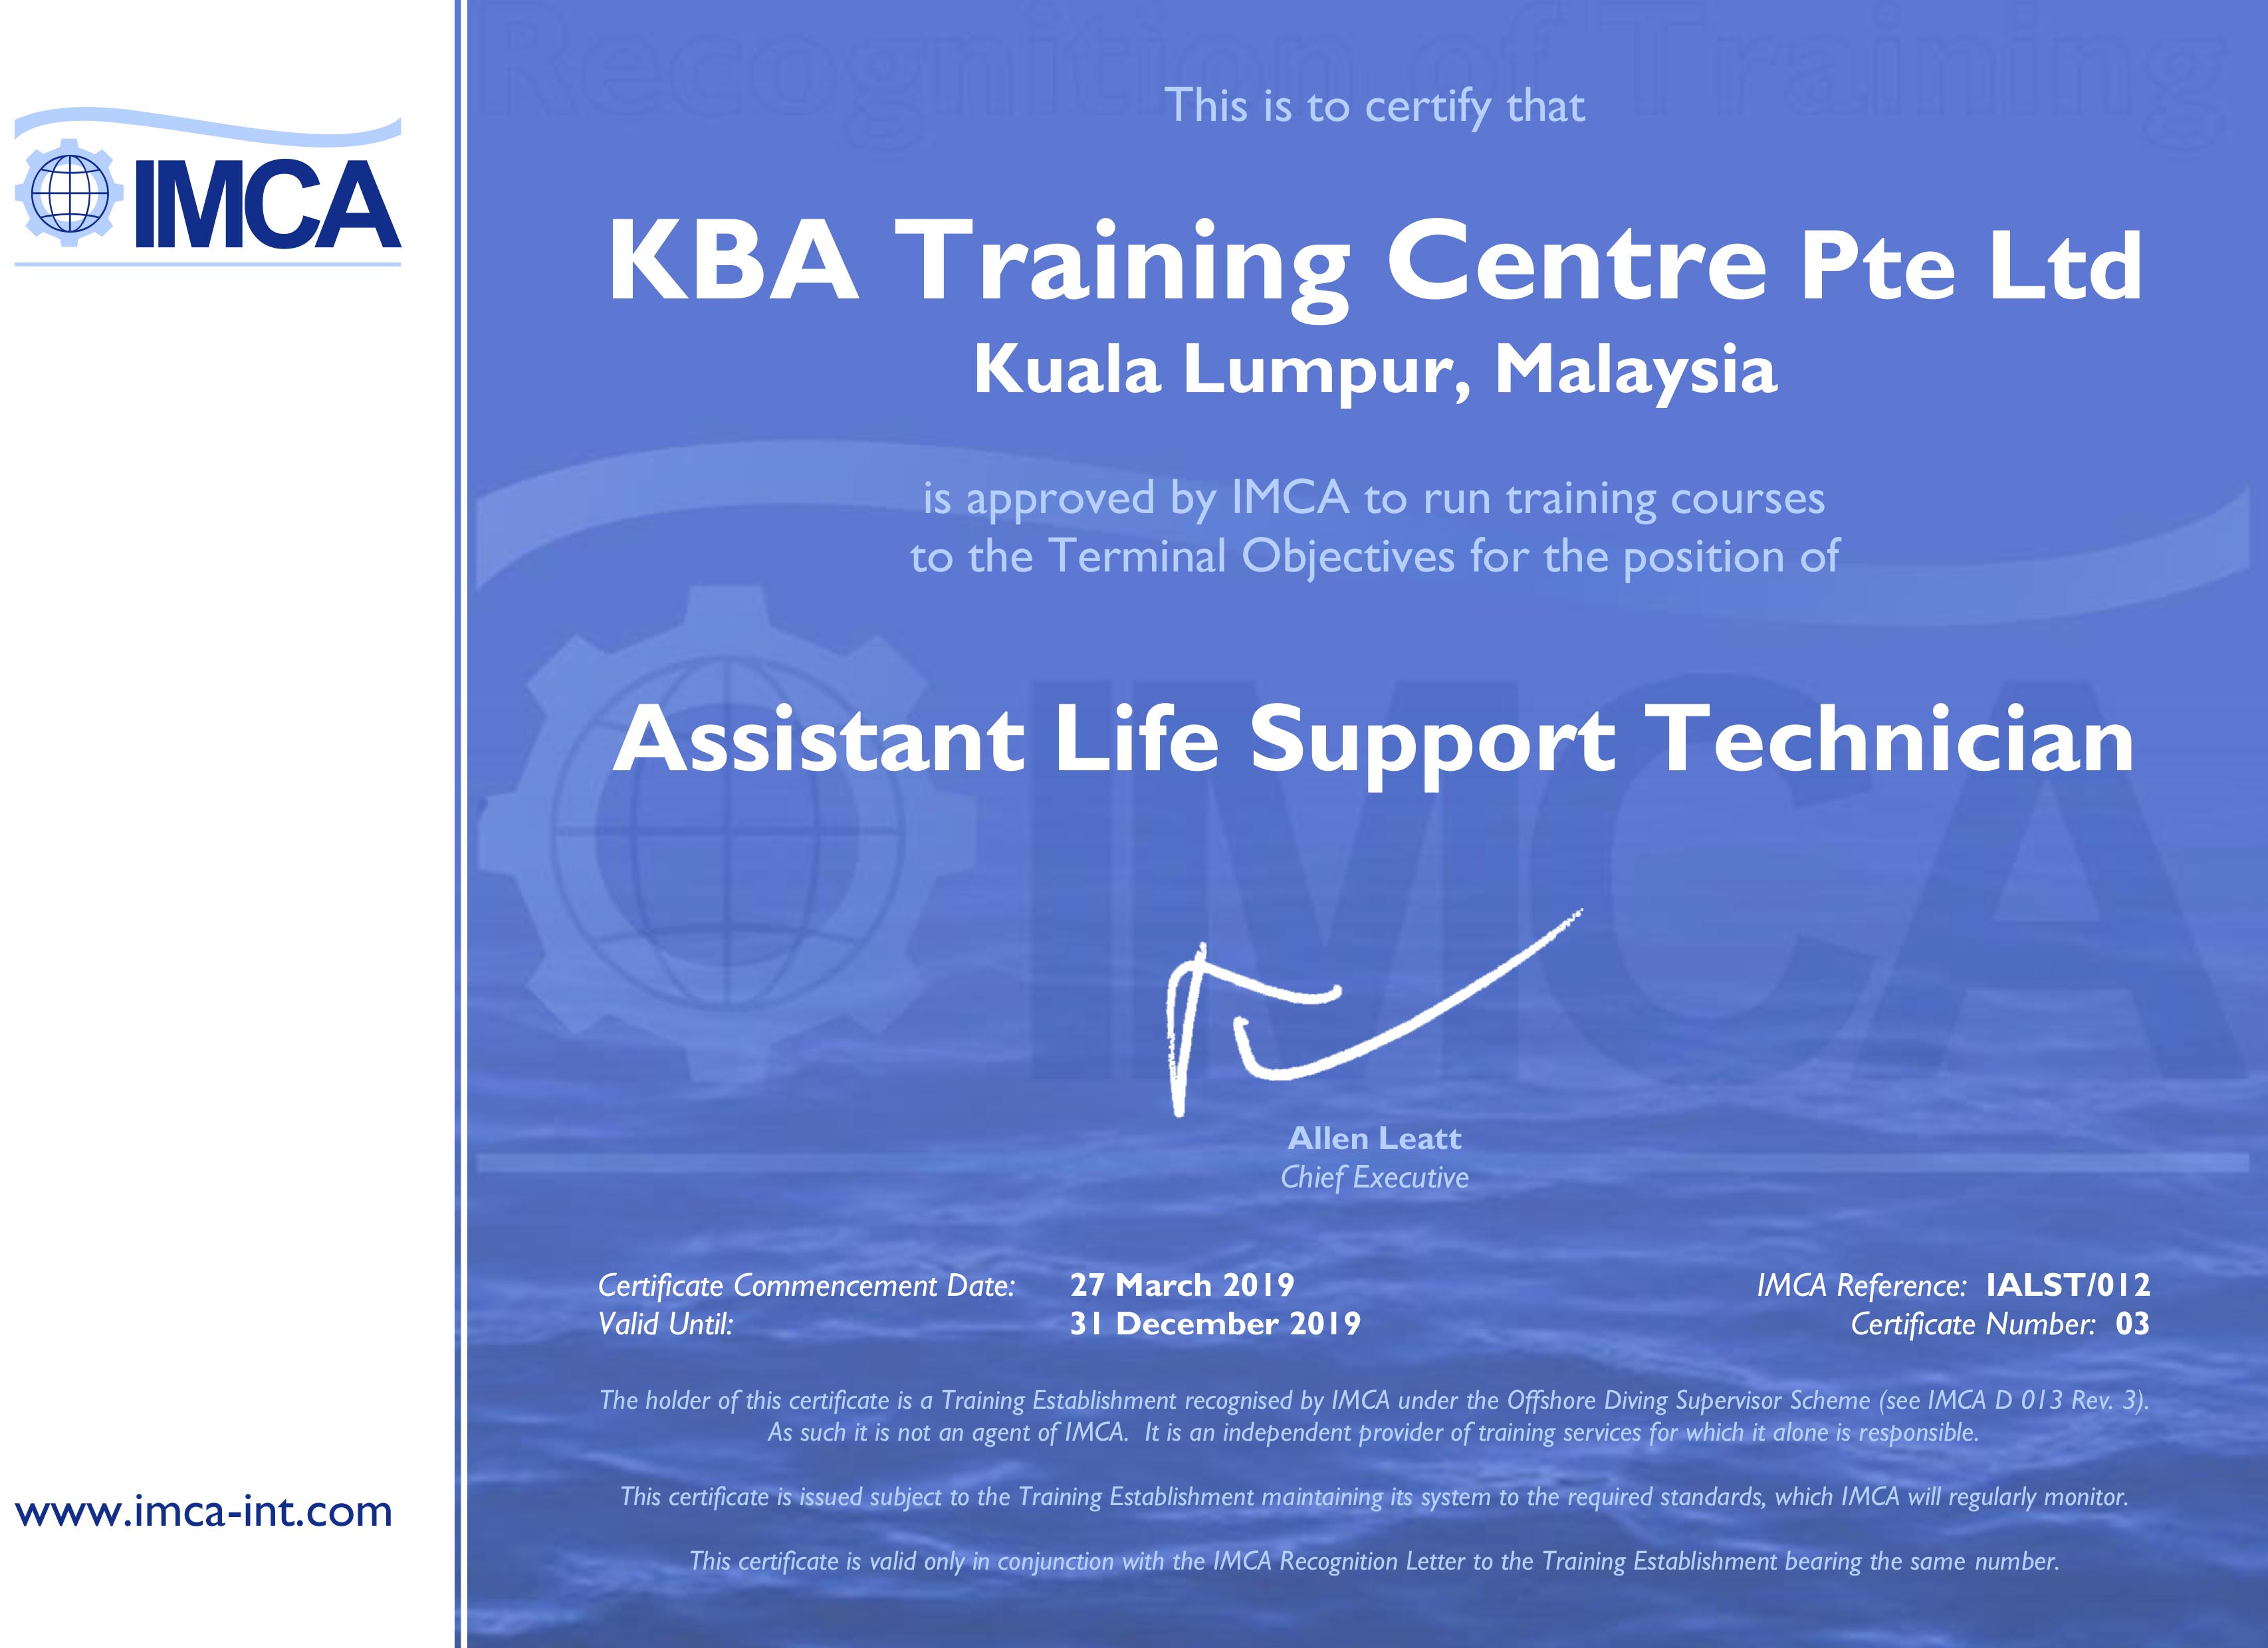 IMCA Assistant Life Support Technician - Kuala Lumpur Certification